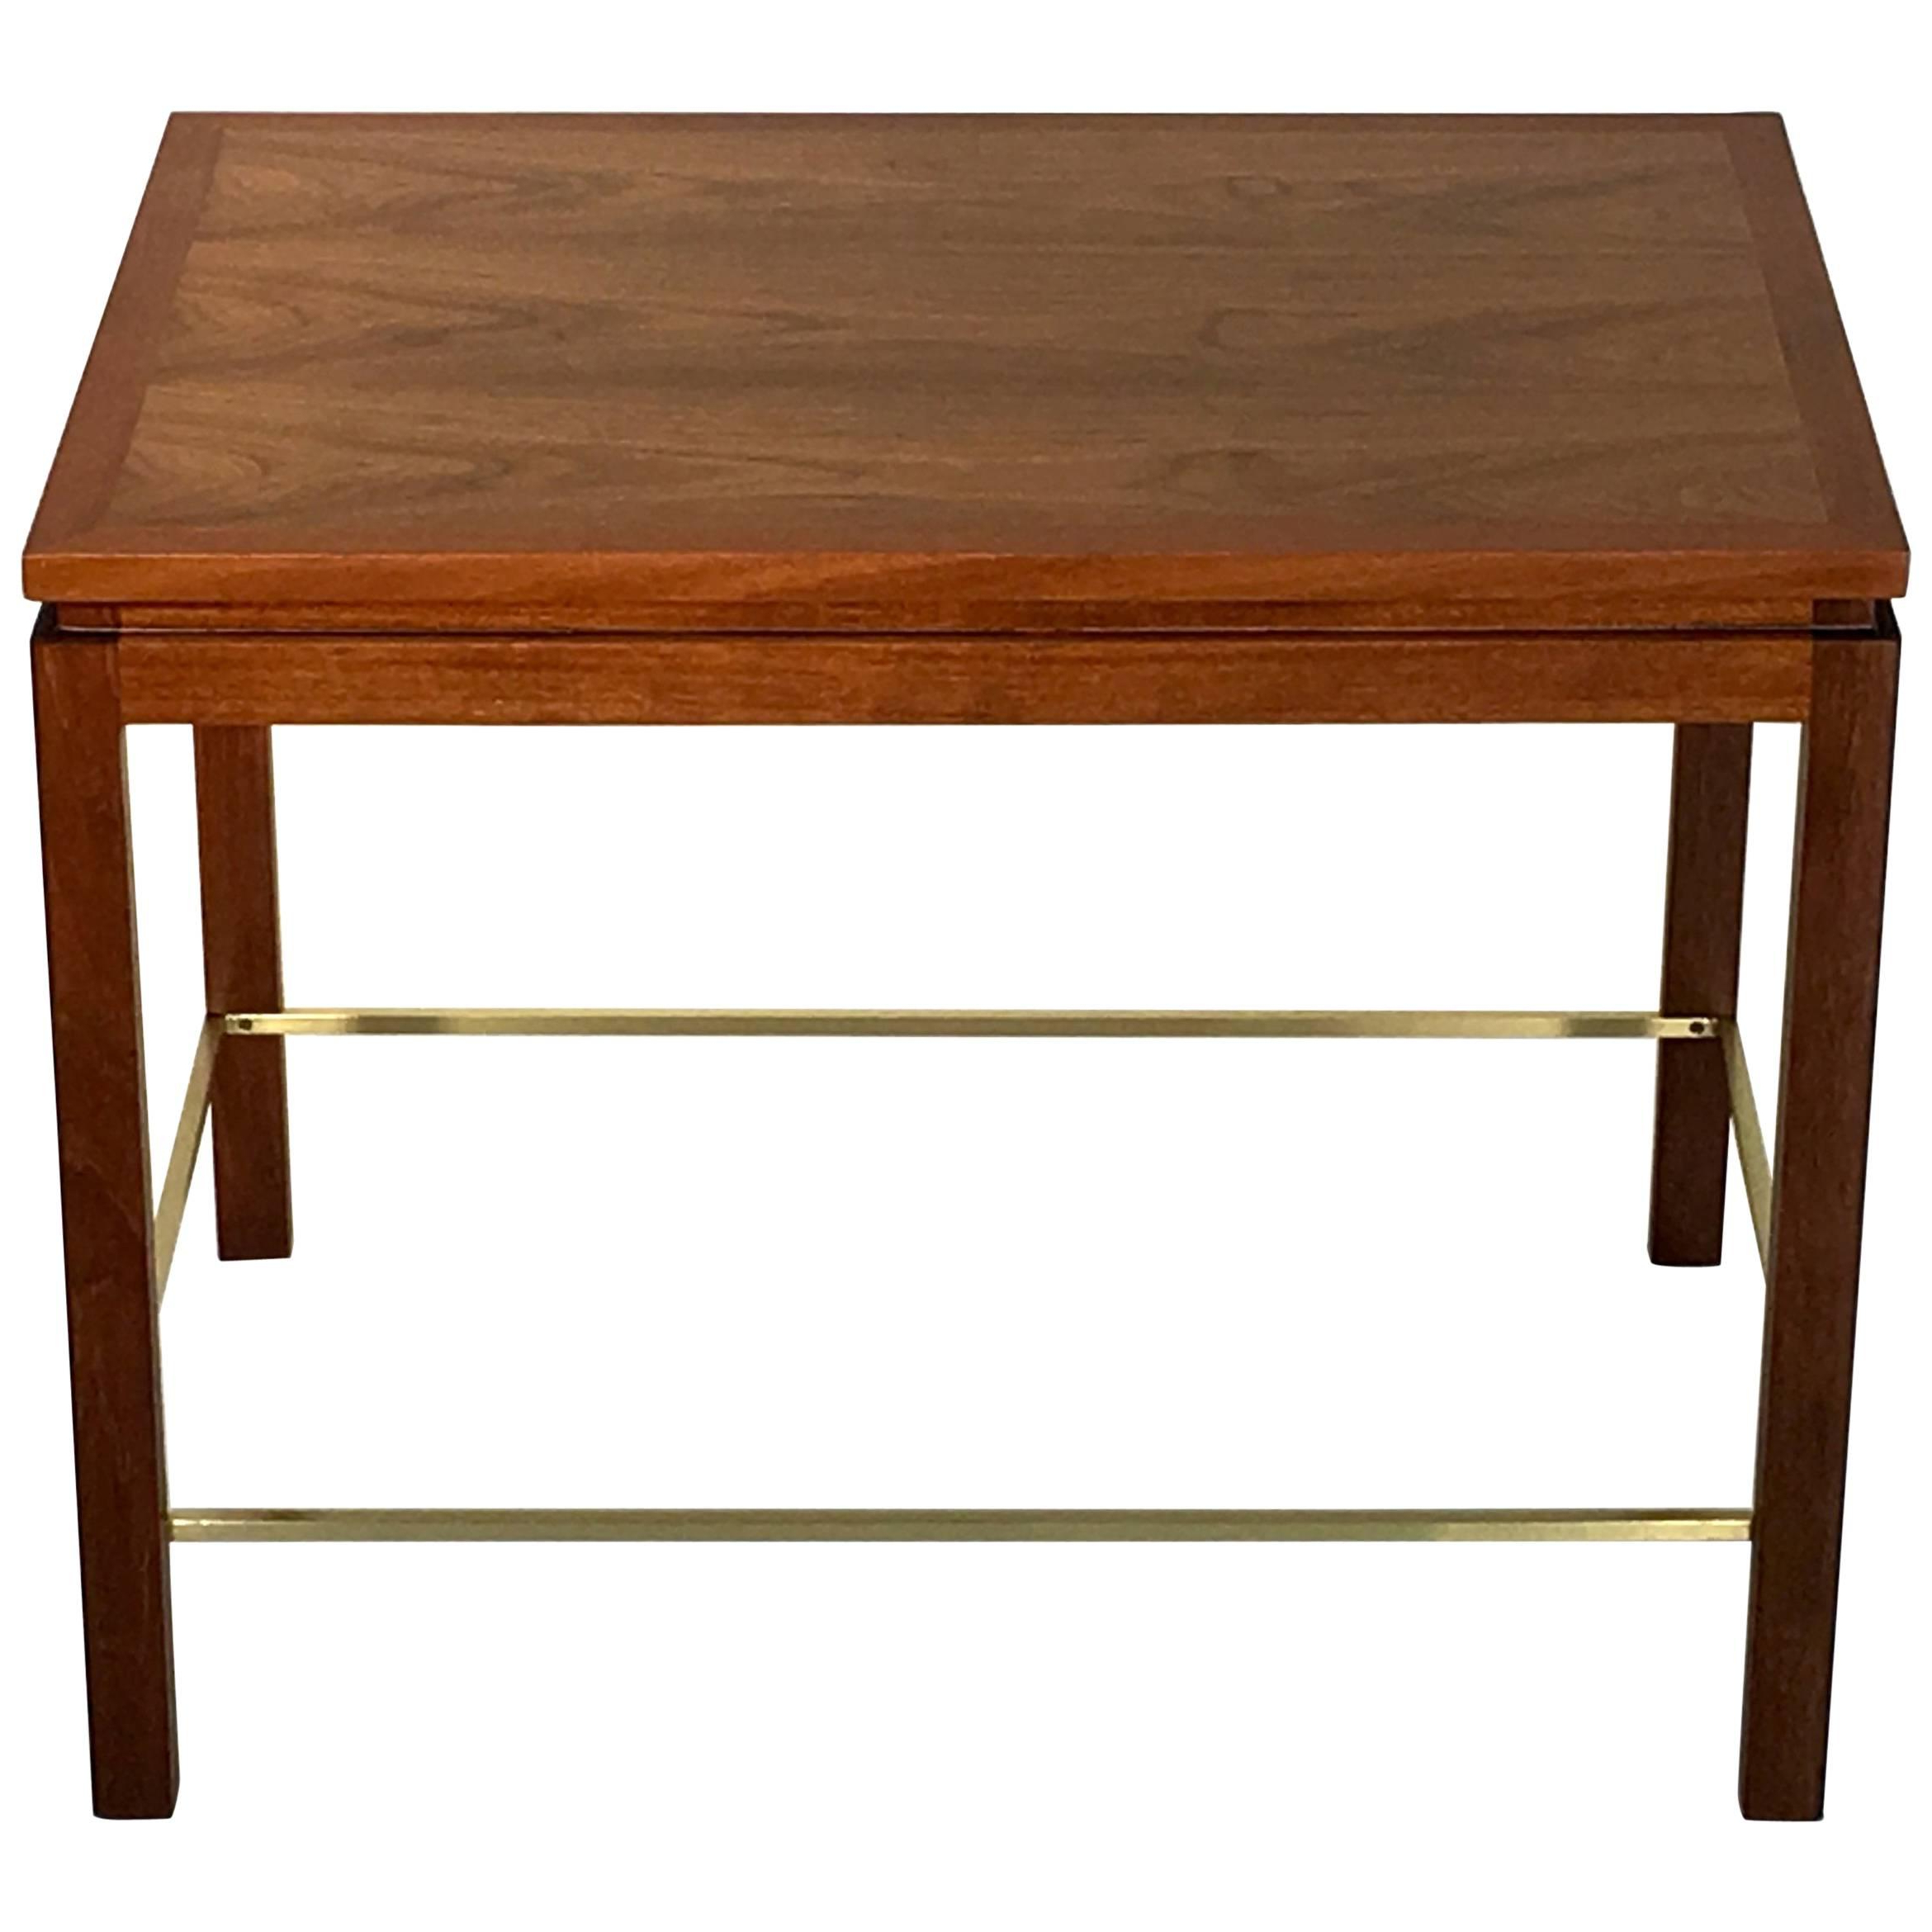 Dunbar Furniture Console Tables – 25 For Sale At 1Stdibs Intended For Well Known Oak & Brass Stacking Media Console Tables (View 4 of 20)